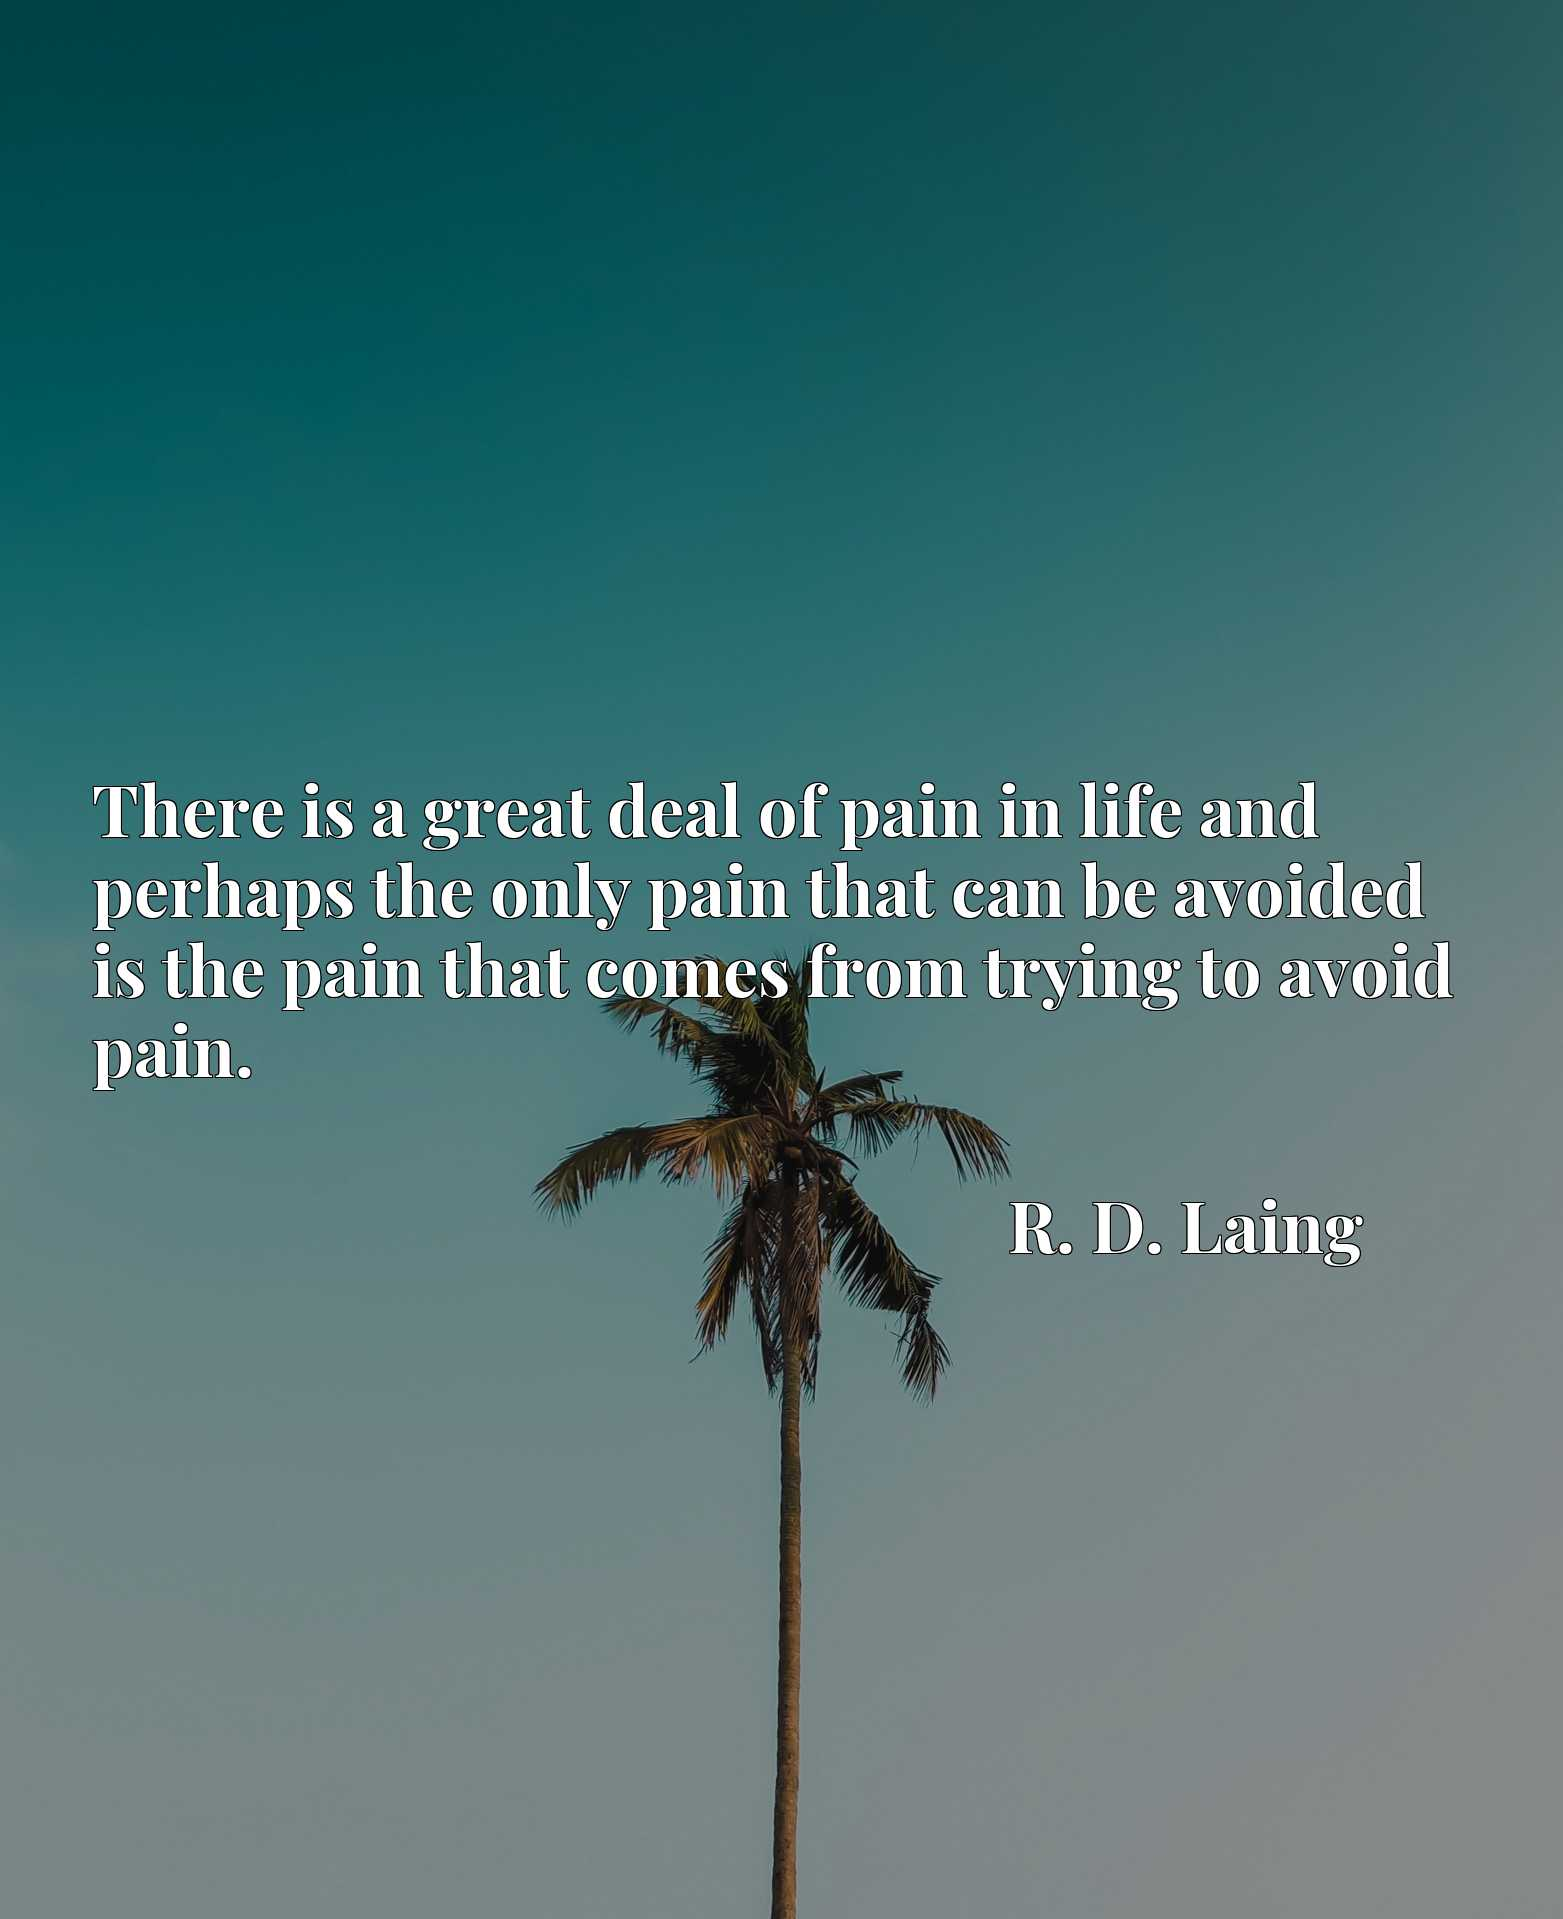 There is a great deal of pain in life and perhaps the only pain that can be avoided is the pain that comes from trying to avoid pain.